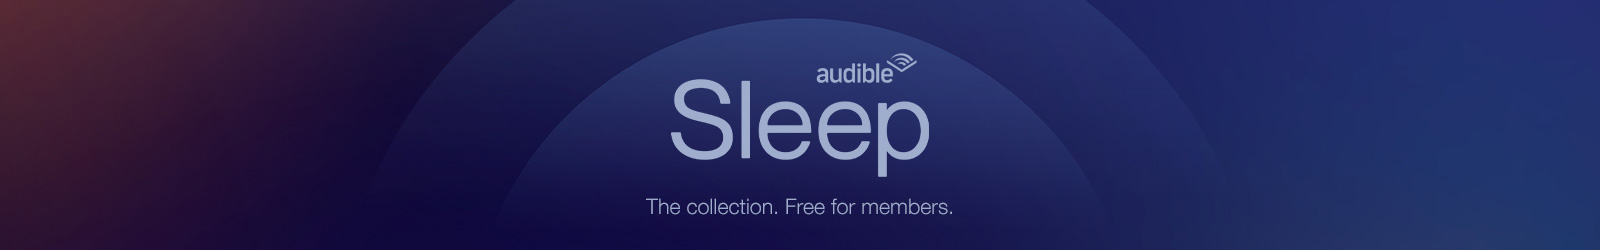 Audible Sleep. A good night's sleep is essential for keeping our minds and bodies strong, but it's not always an easy thing to get, especially now. To help, we've created a collection of audio experiences, free for members, designed to invite relaxation and sleep.